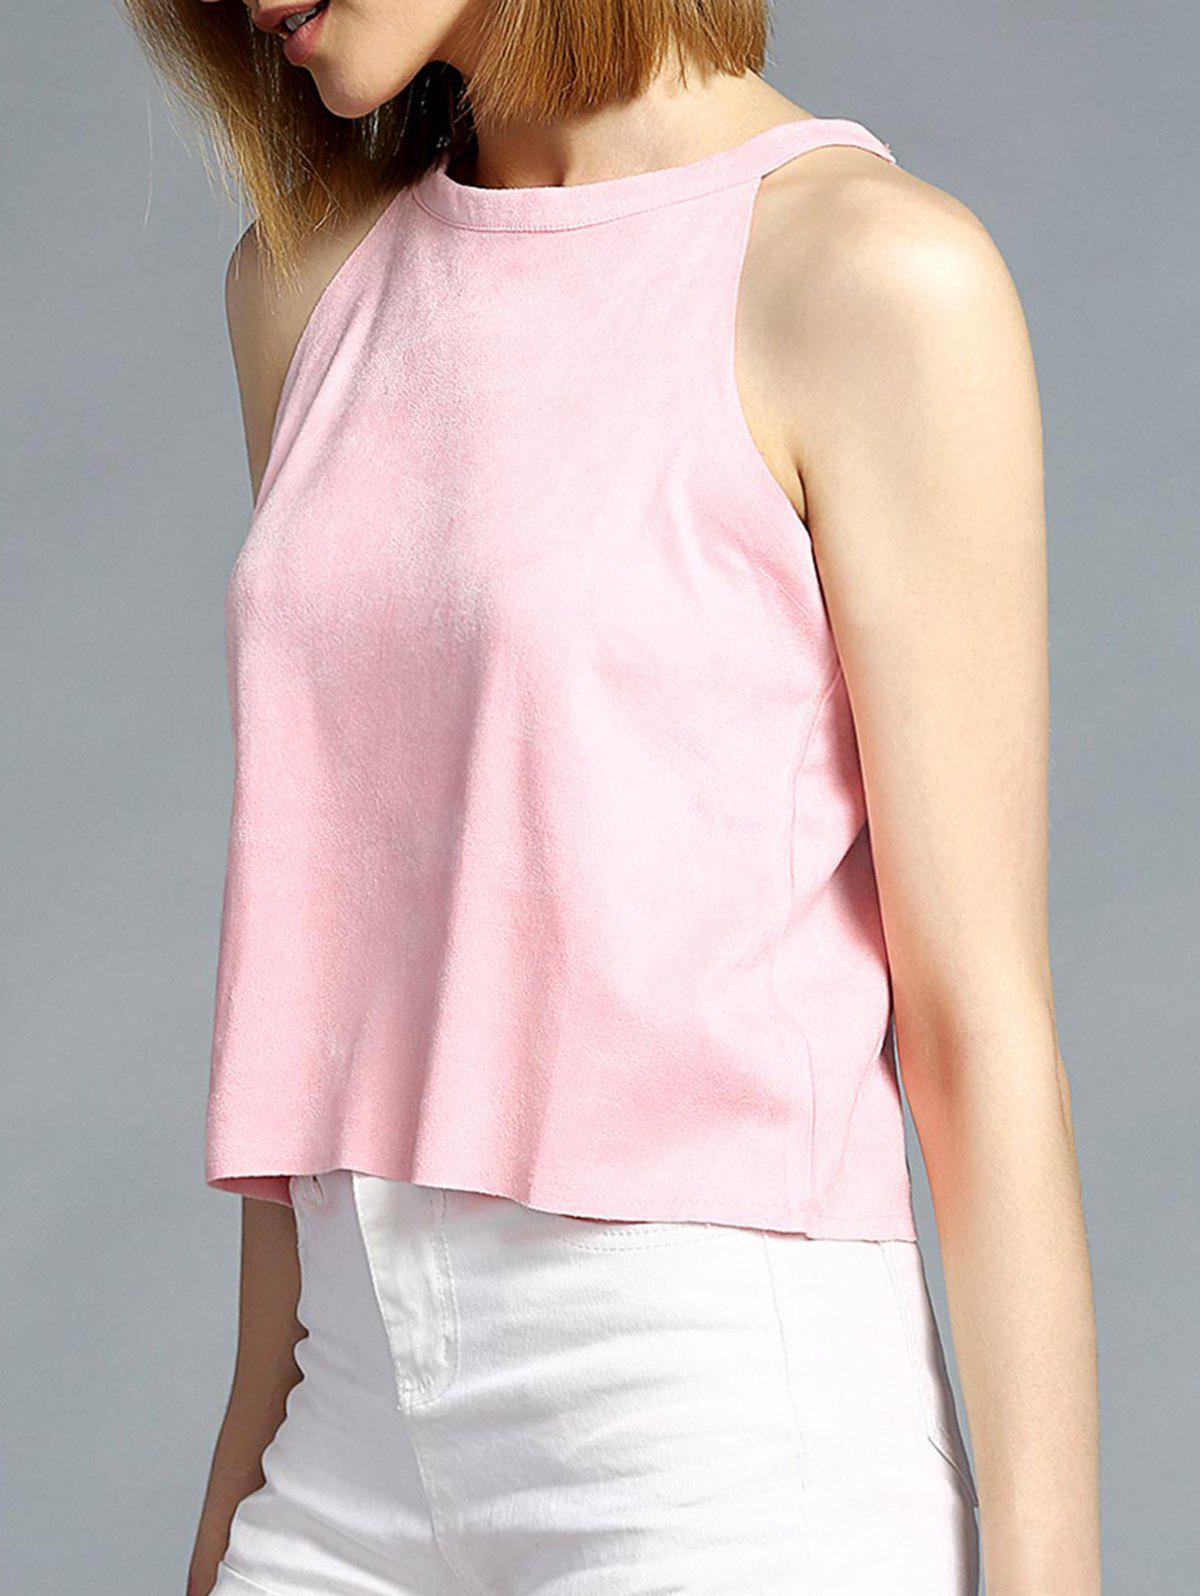 Brief Round Neck Pure Color Women's Tank Top - LIGHT PINK ONE SIZE(FIT SIZE XS TO M)